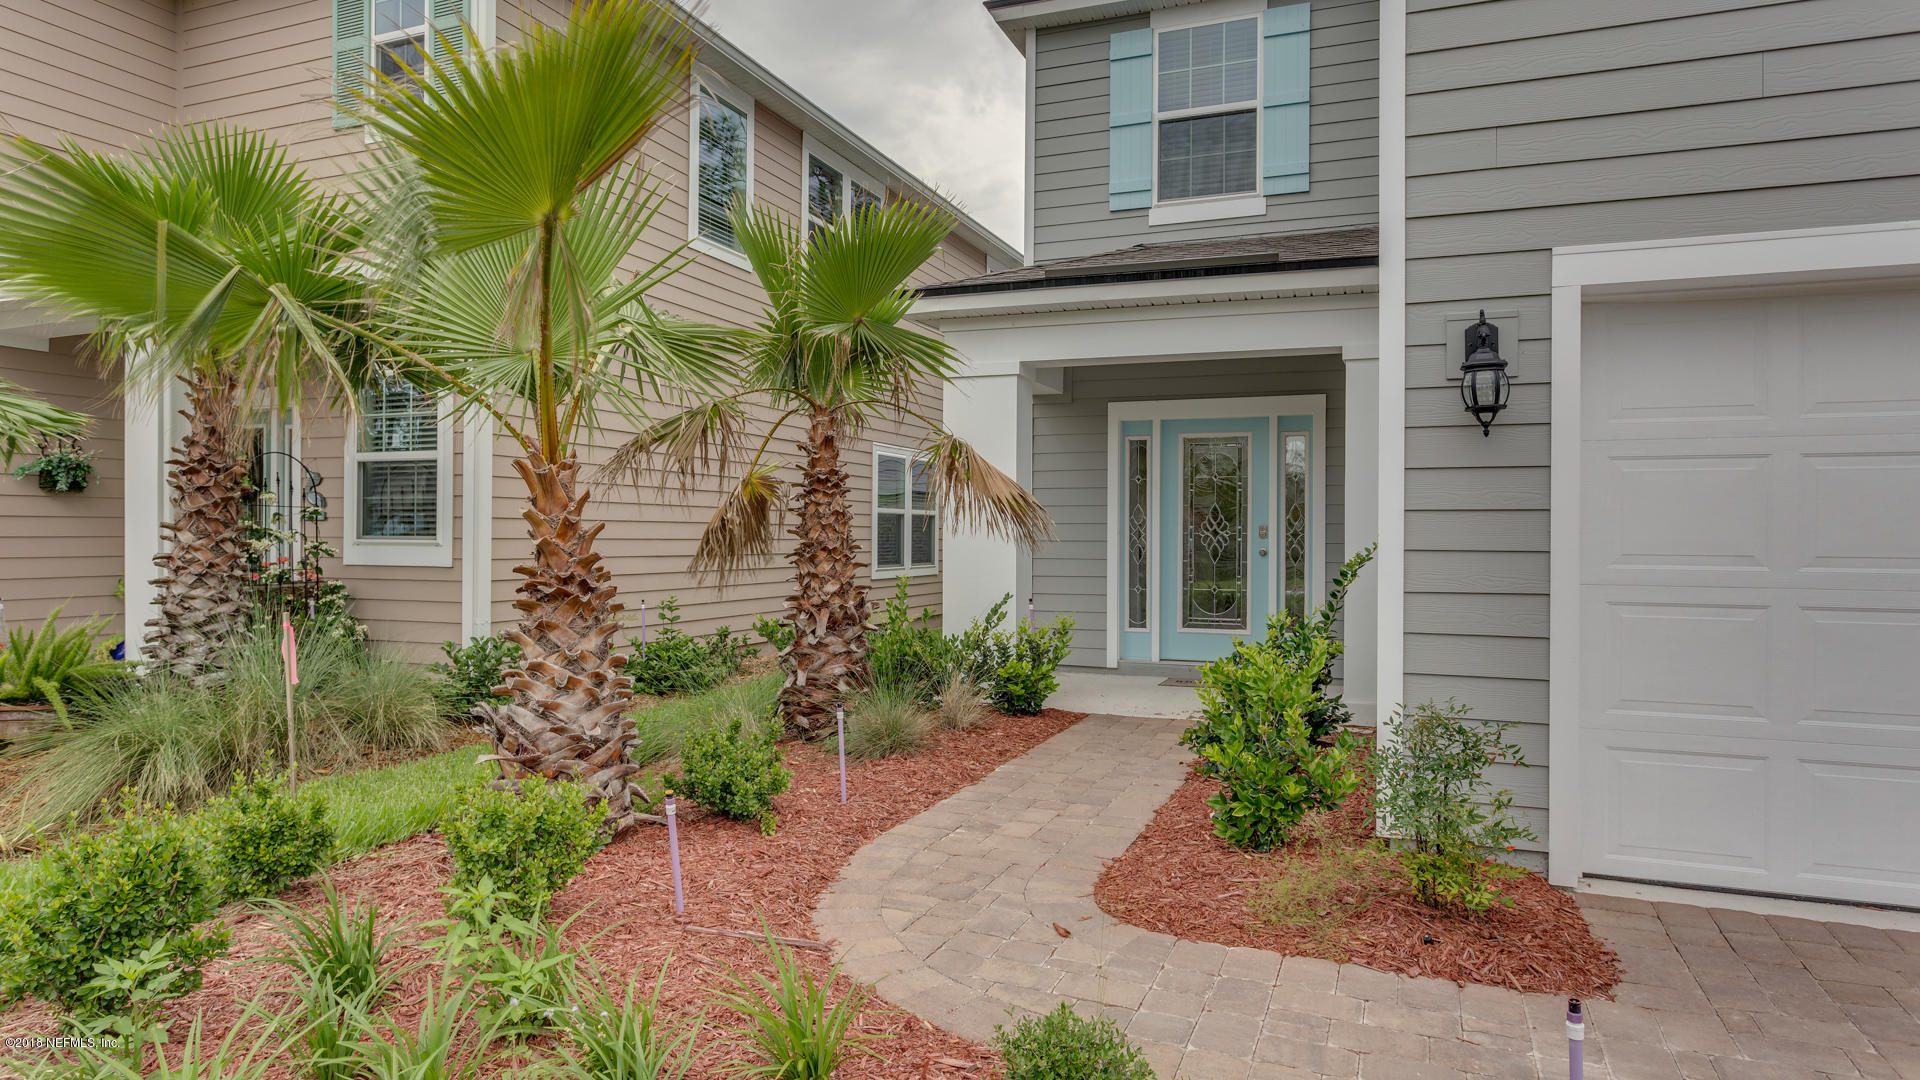 4007 COASTAL COVE, JACKSONVILLE, FLORIDA 32224, 4 Bedrooms Bedrooms, ,2 BathroomsBathrooms,Residential - single family,For sale,COASTAL COVE,904582